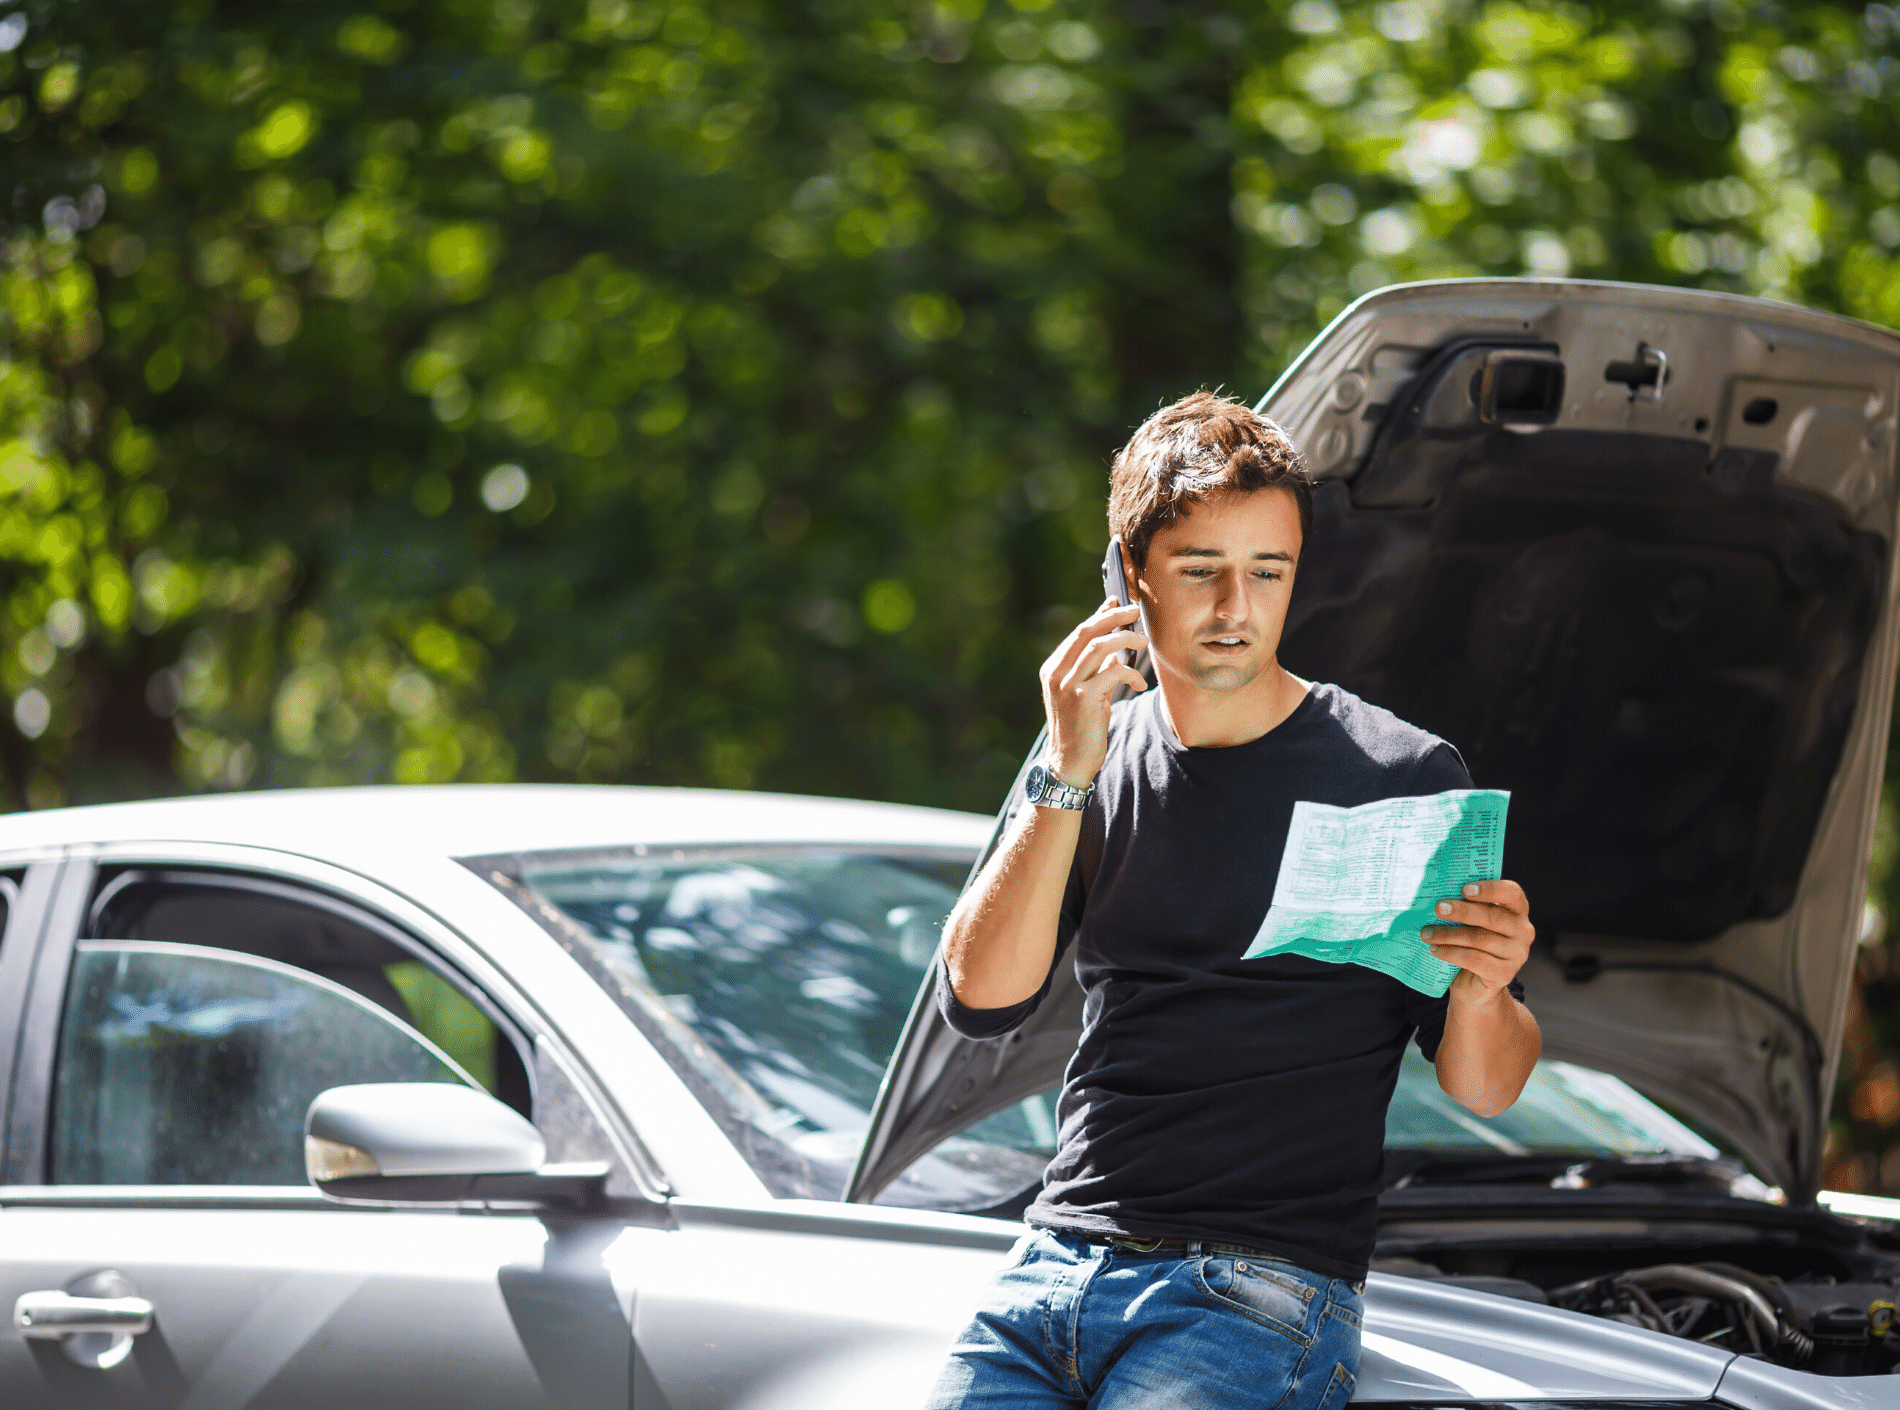 Benefits of Roadside Assistance for Your Vehicle